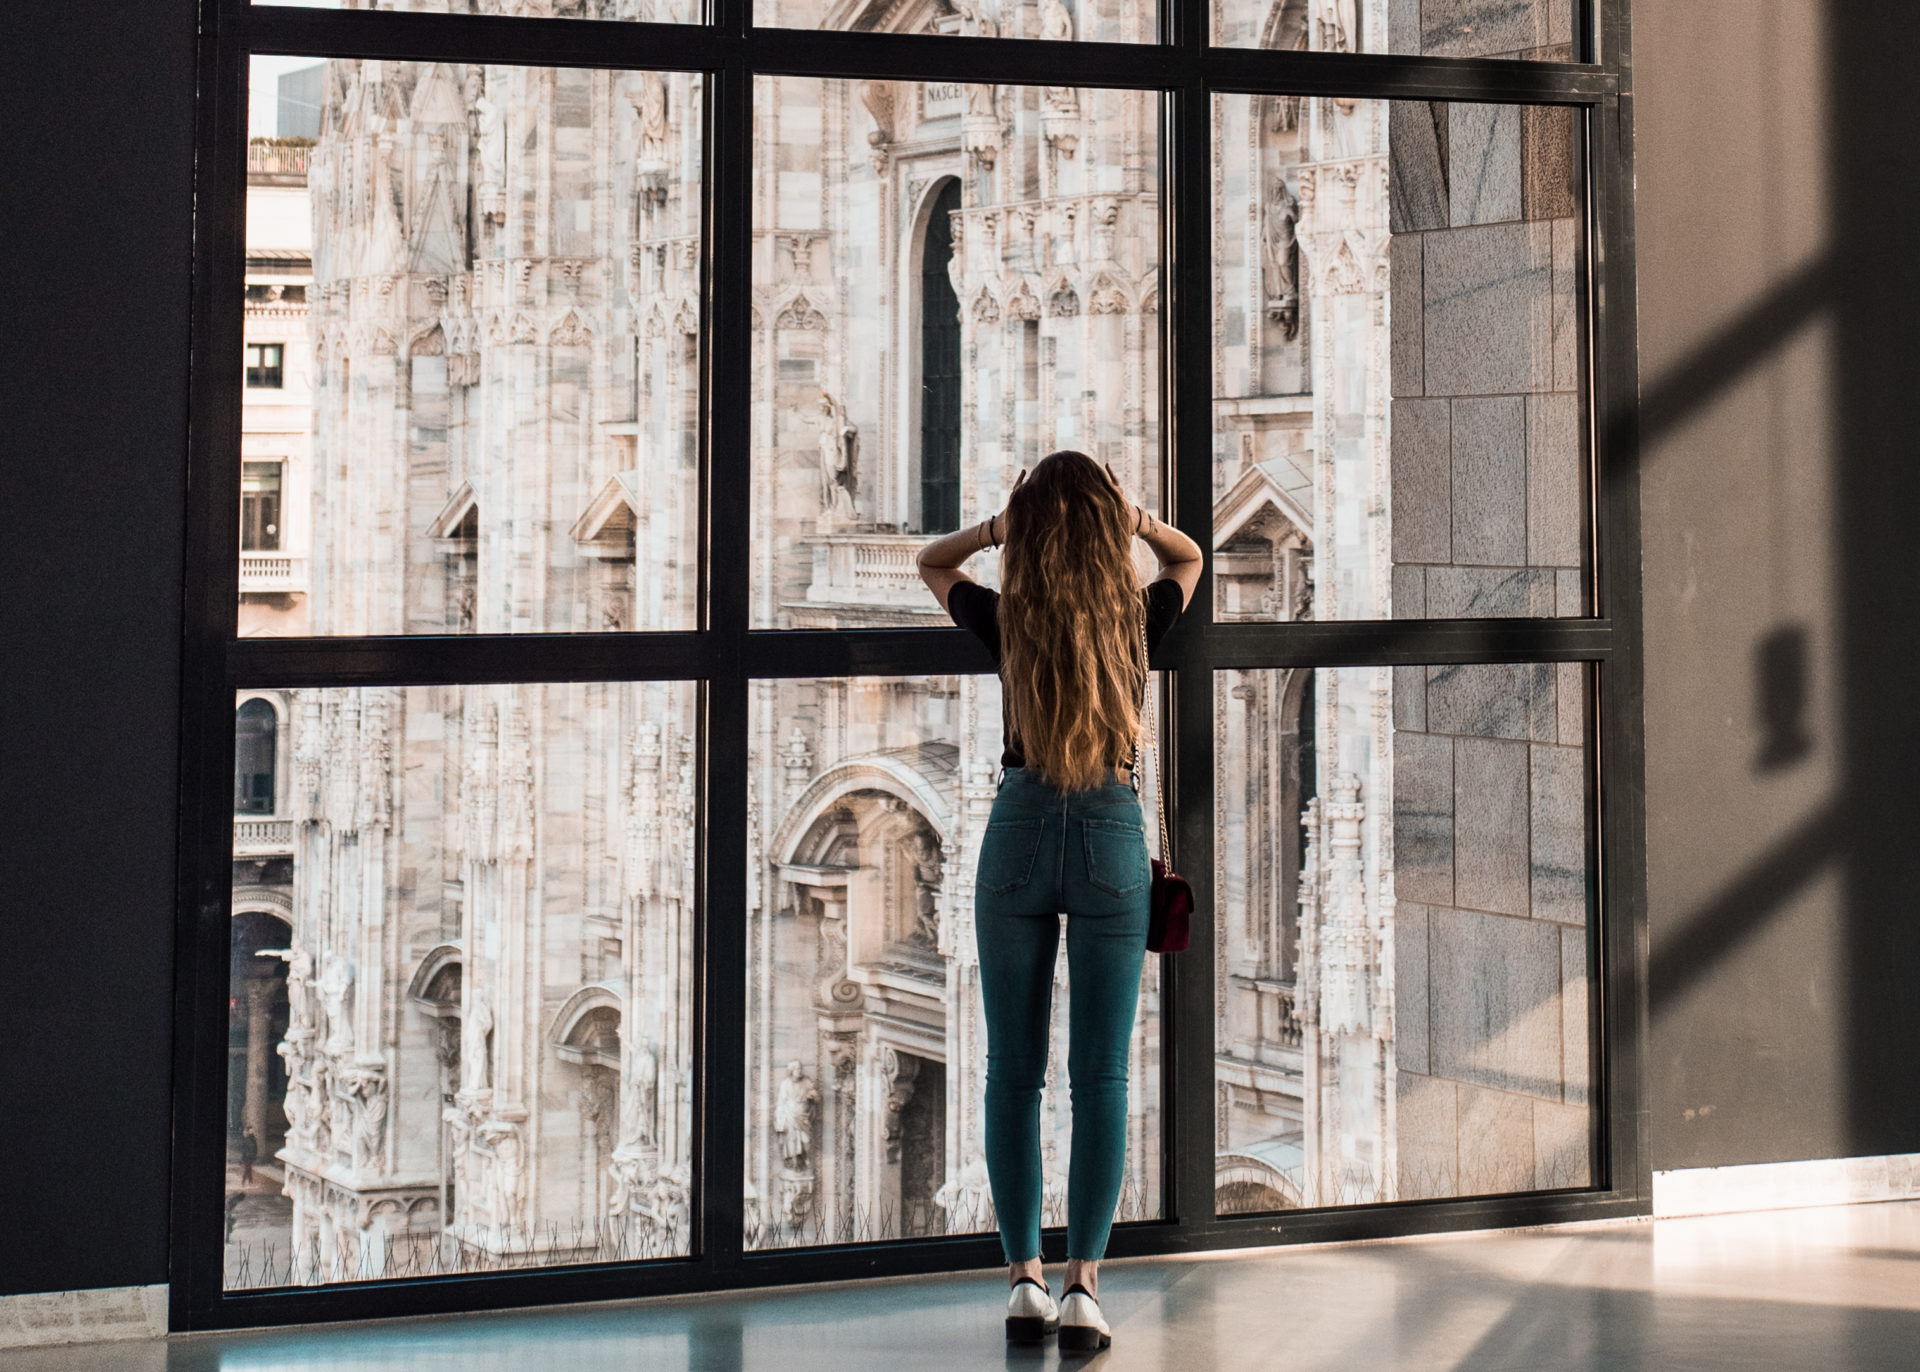 Museo Del 900 Milano.Il Museo Del Novecento In Milan Great For Art And Photos Popshion